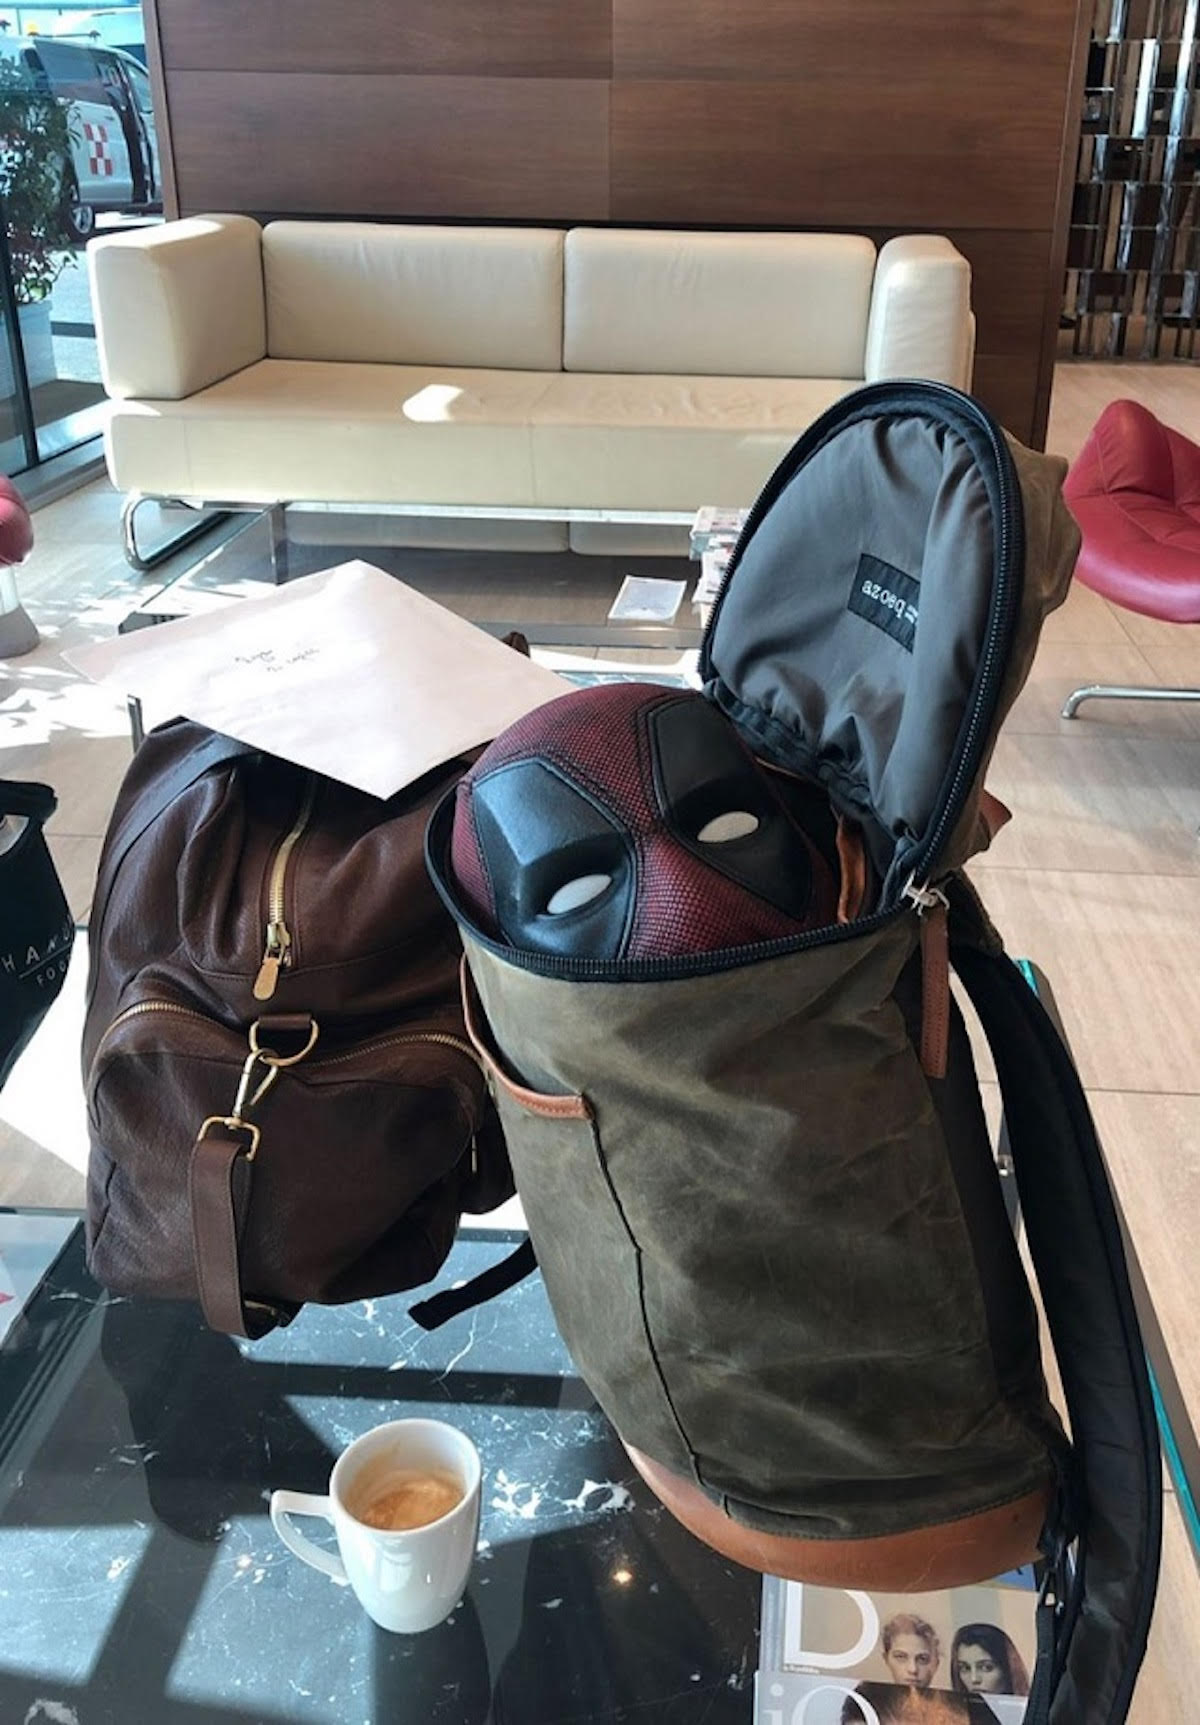 Ryan Reynolds' Instagram post, with Deadpool's mask coming out of his bag